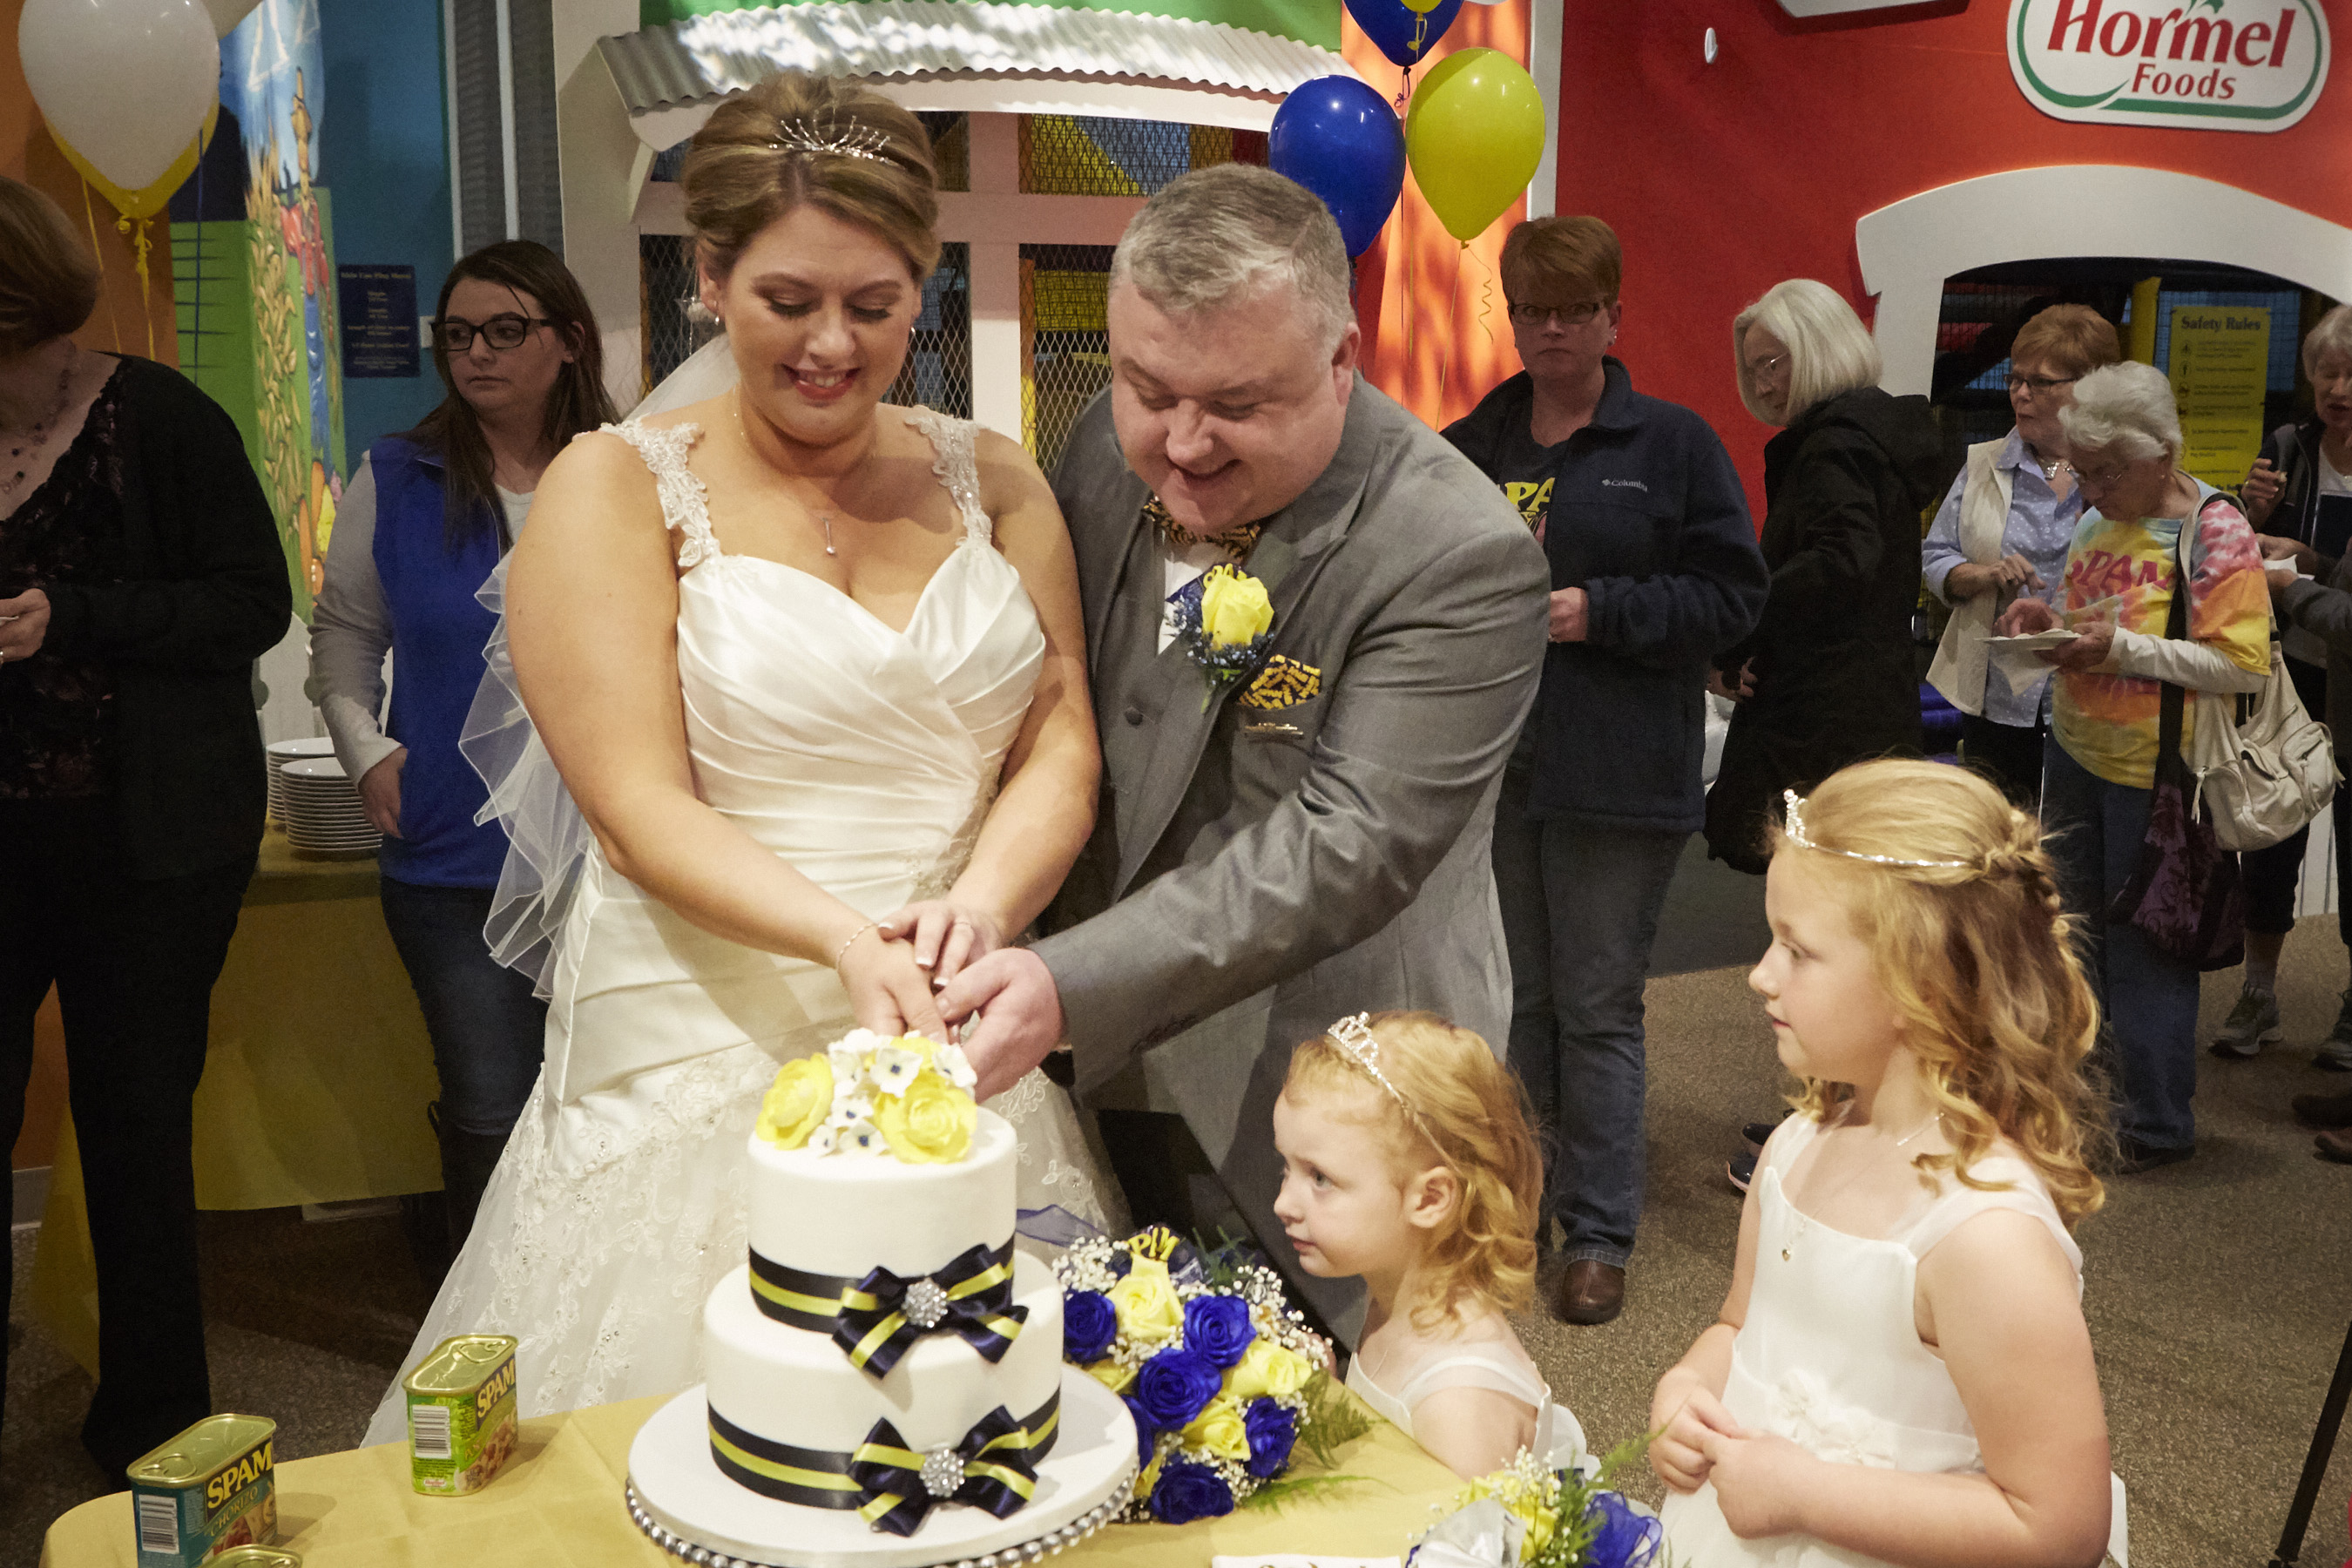 The newlyweds cutting their cake following the ceremony at the SPAM Museum